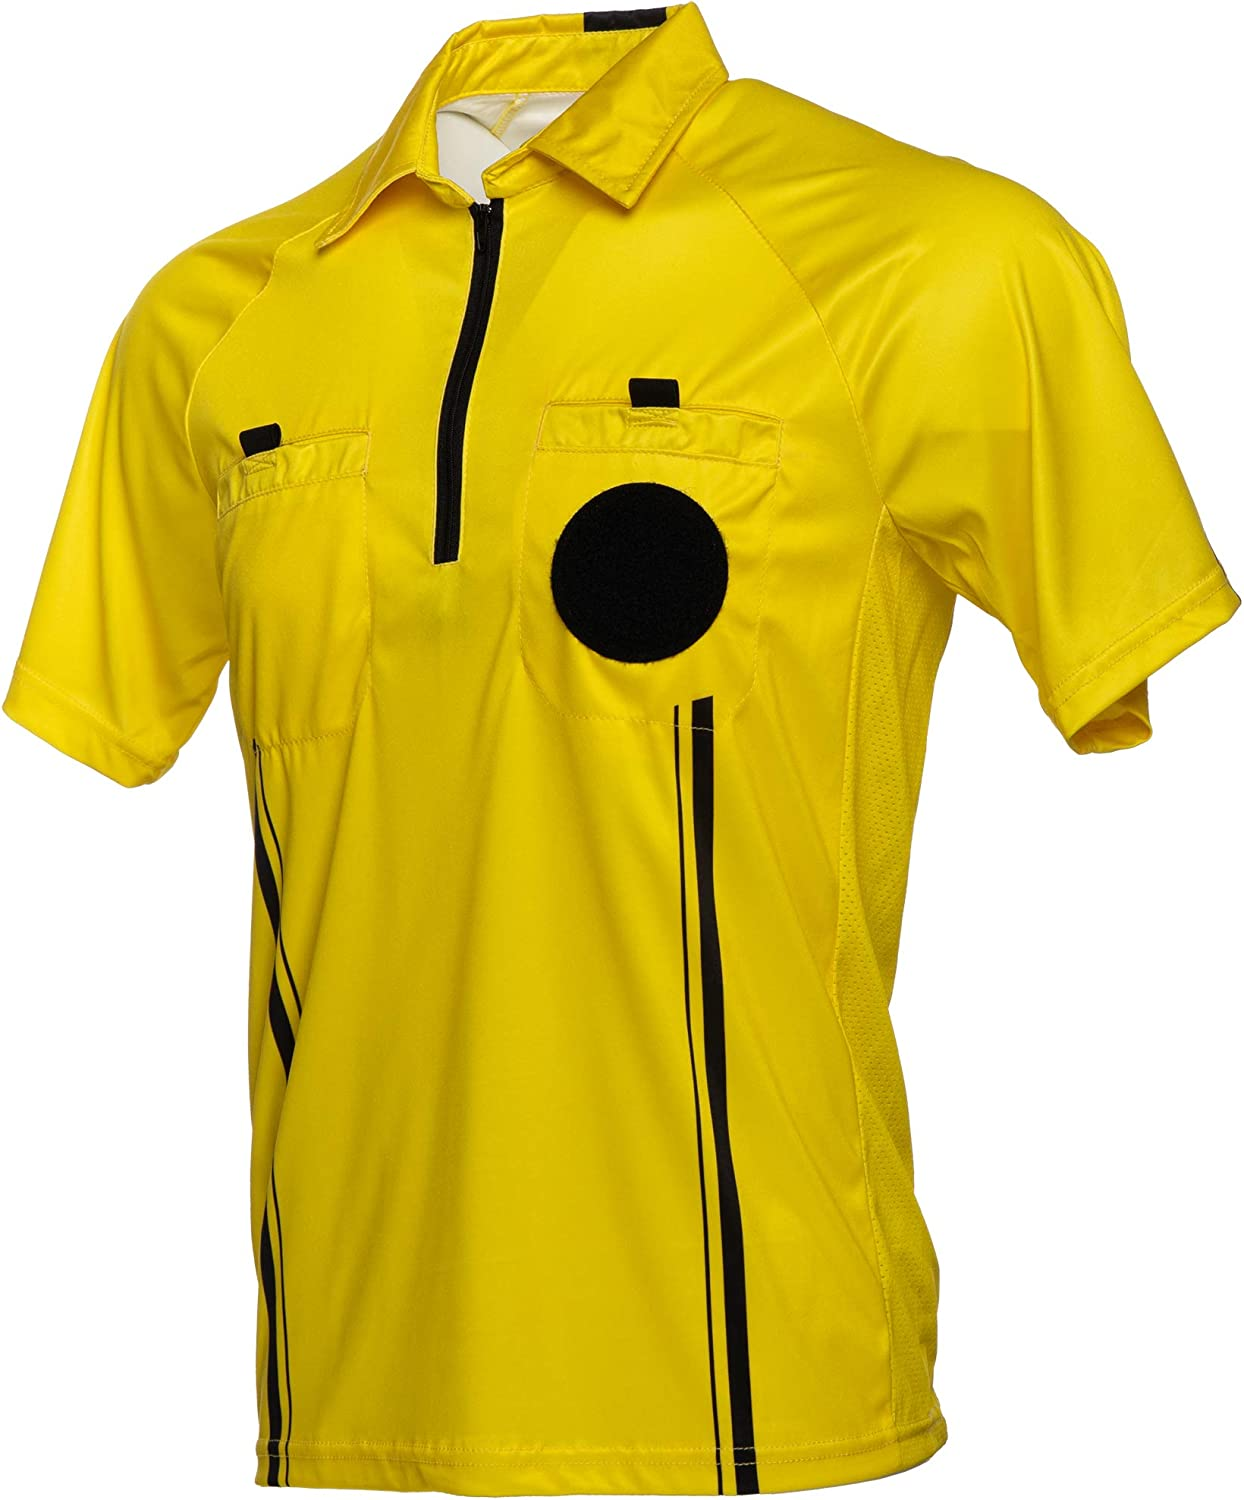 Murray Sporting Goods USSF Pro-Style Soccer Referee Jersey